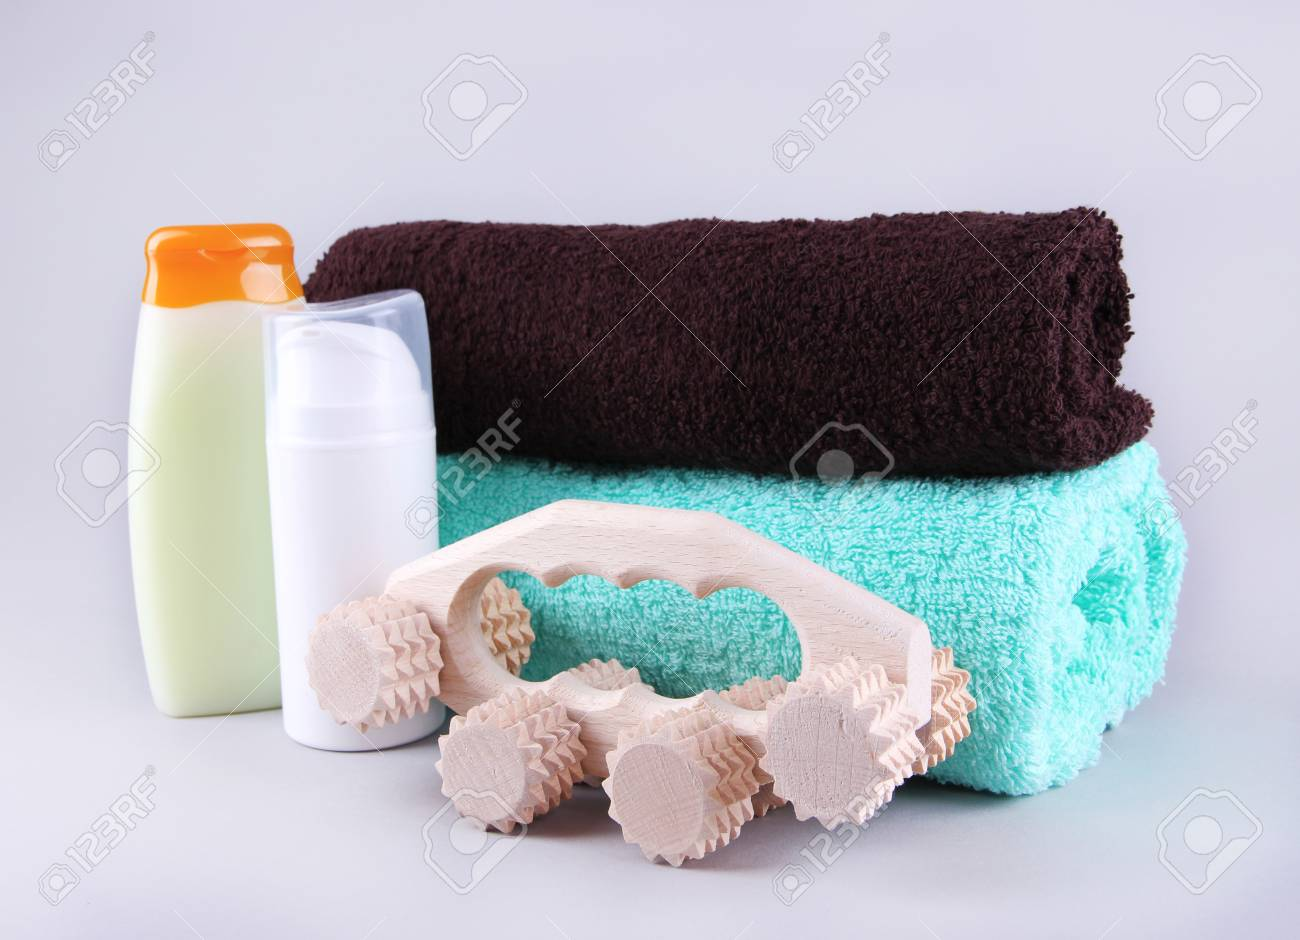 Wooden Roller Brush, Towels And Shower Kit On Grey Background Stock ...